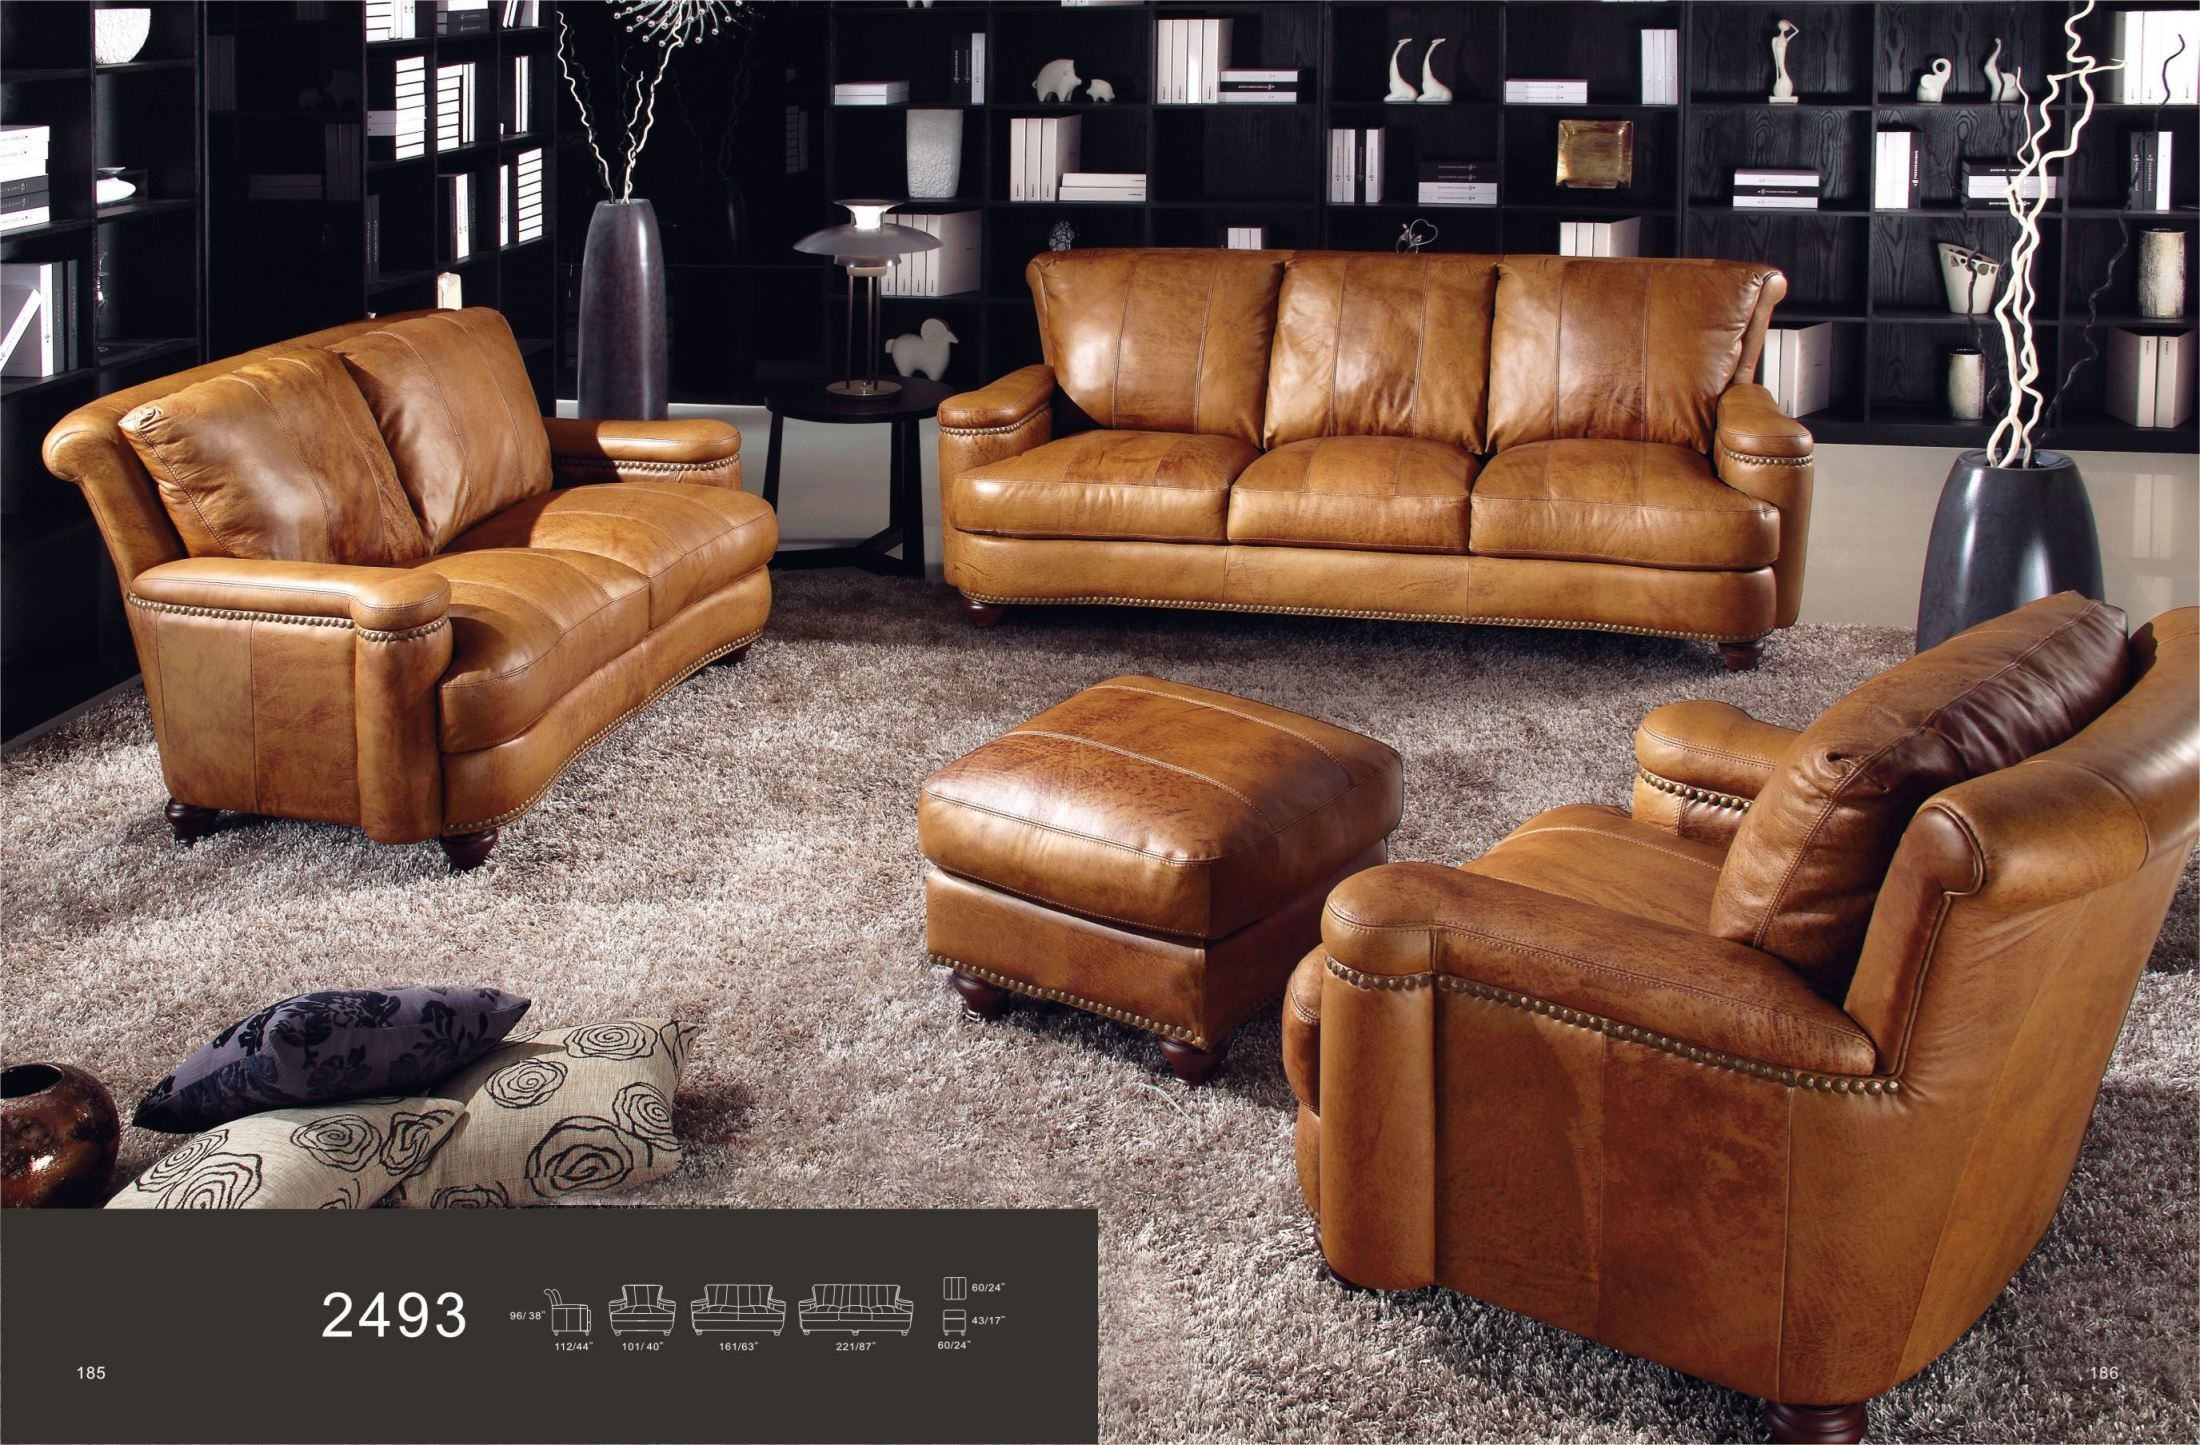 Hutton saddle sofa from luxe leather coleman furniture for Affordable furniture 3 piece sectional in wyoming saddle